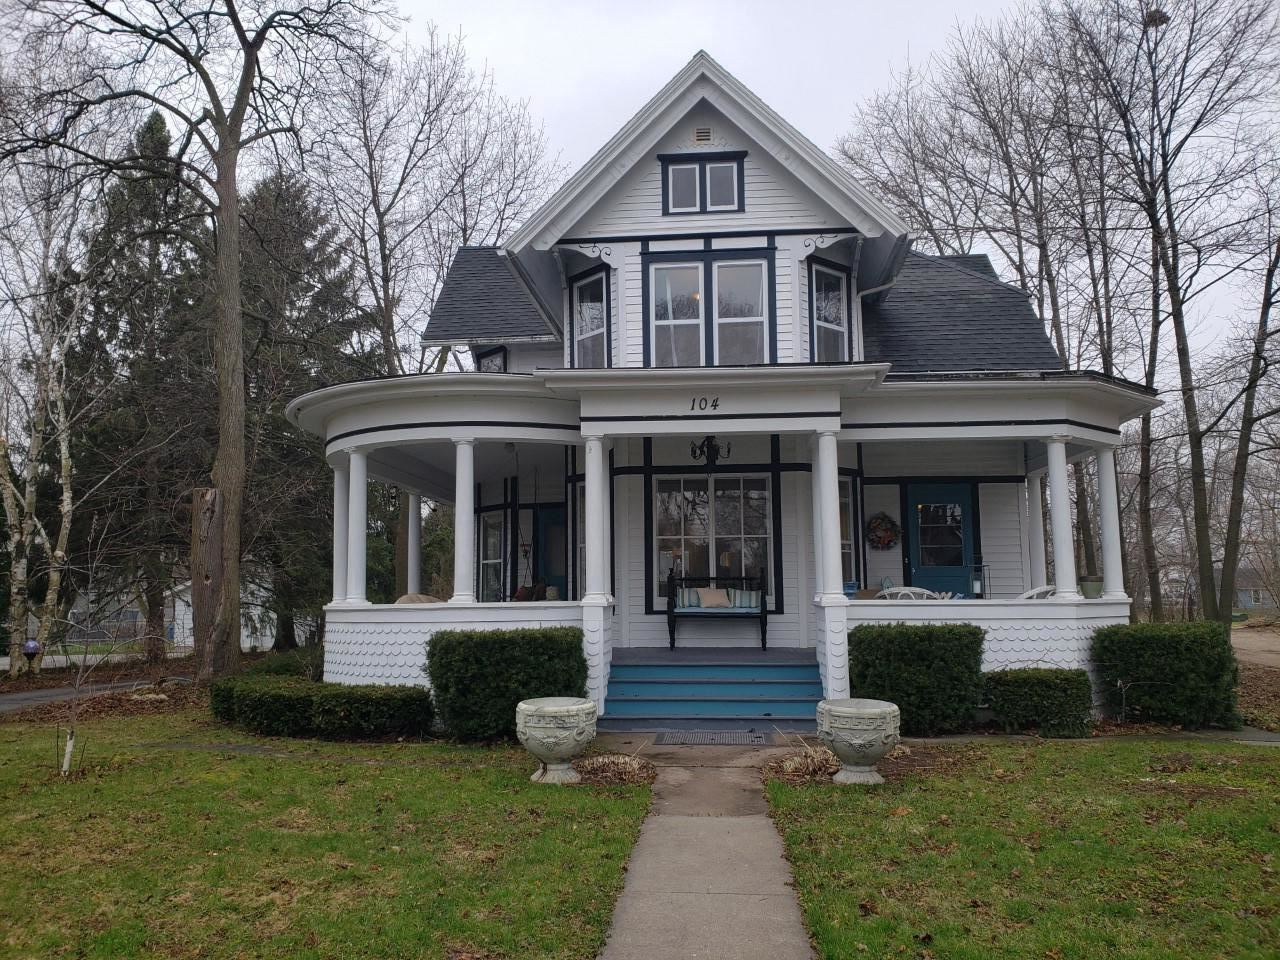 104 South St, Plymouth, WI 53073 - MLS#: 1676723